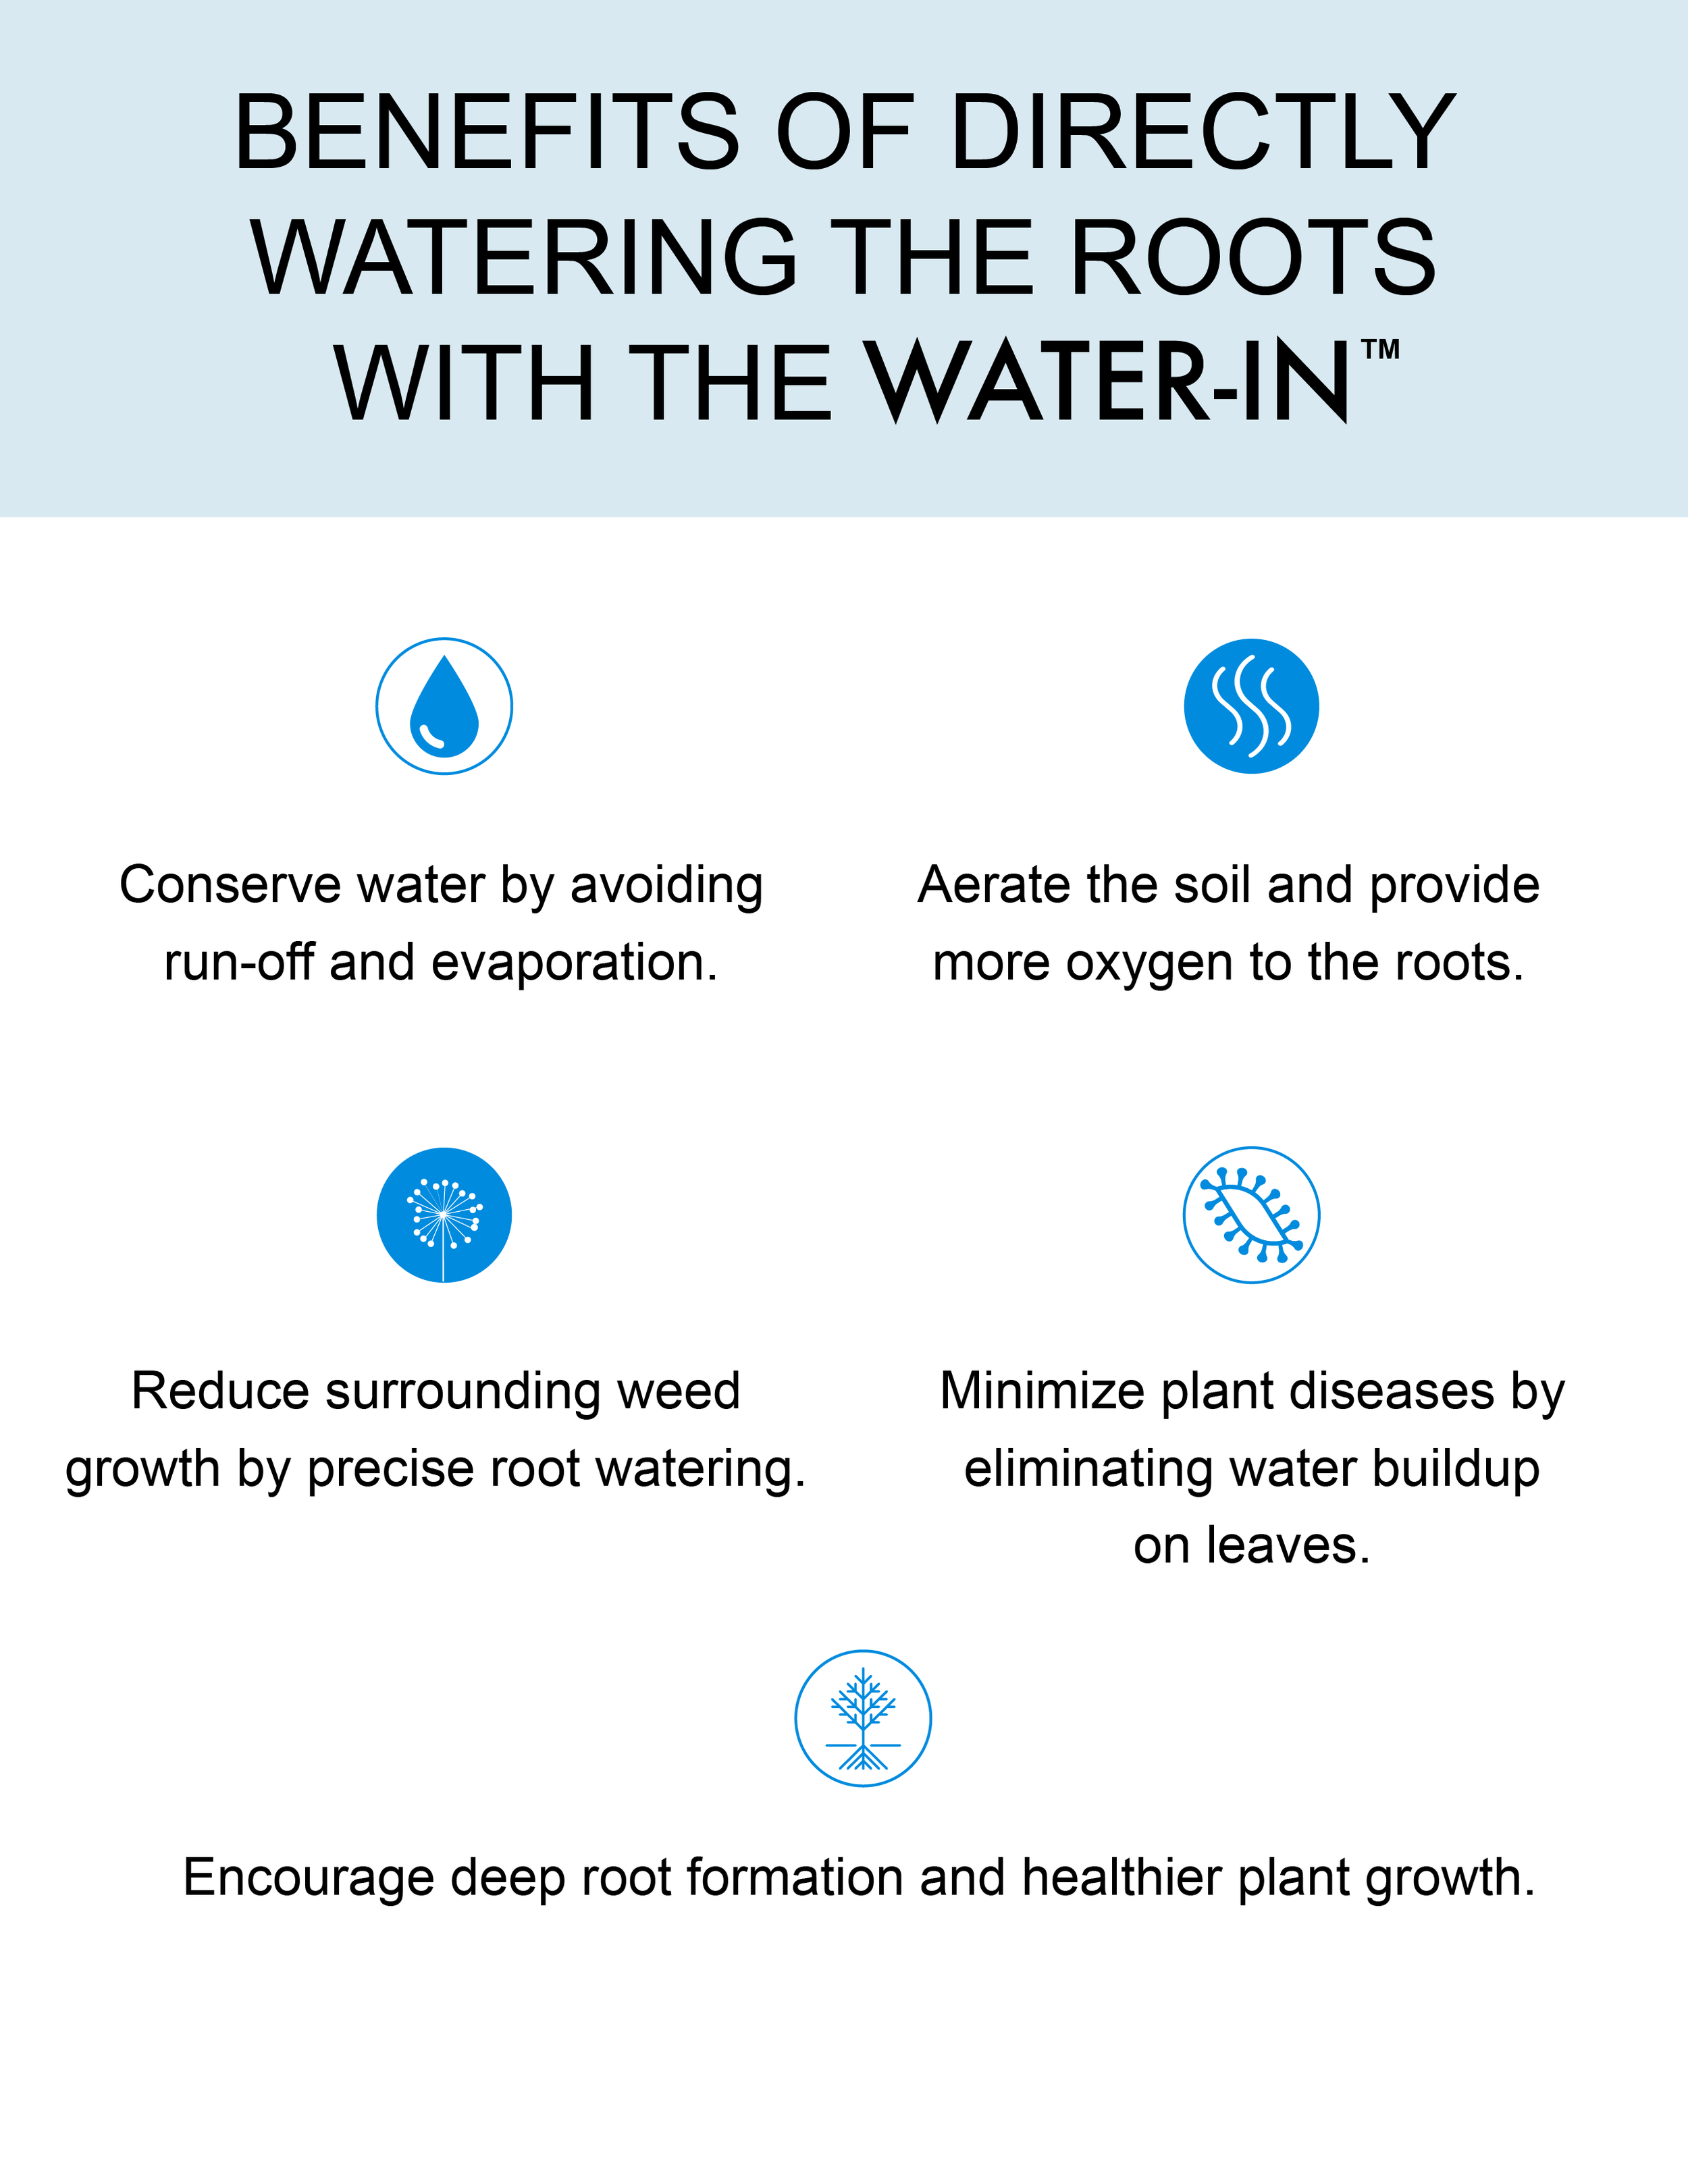 Gardinnovations Water-In Benefits